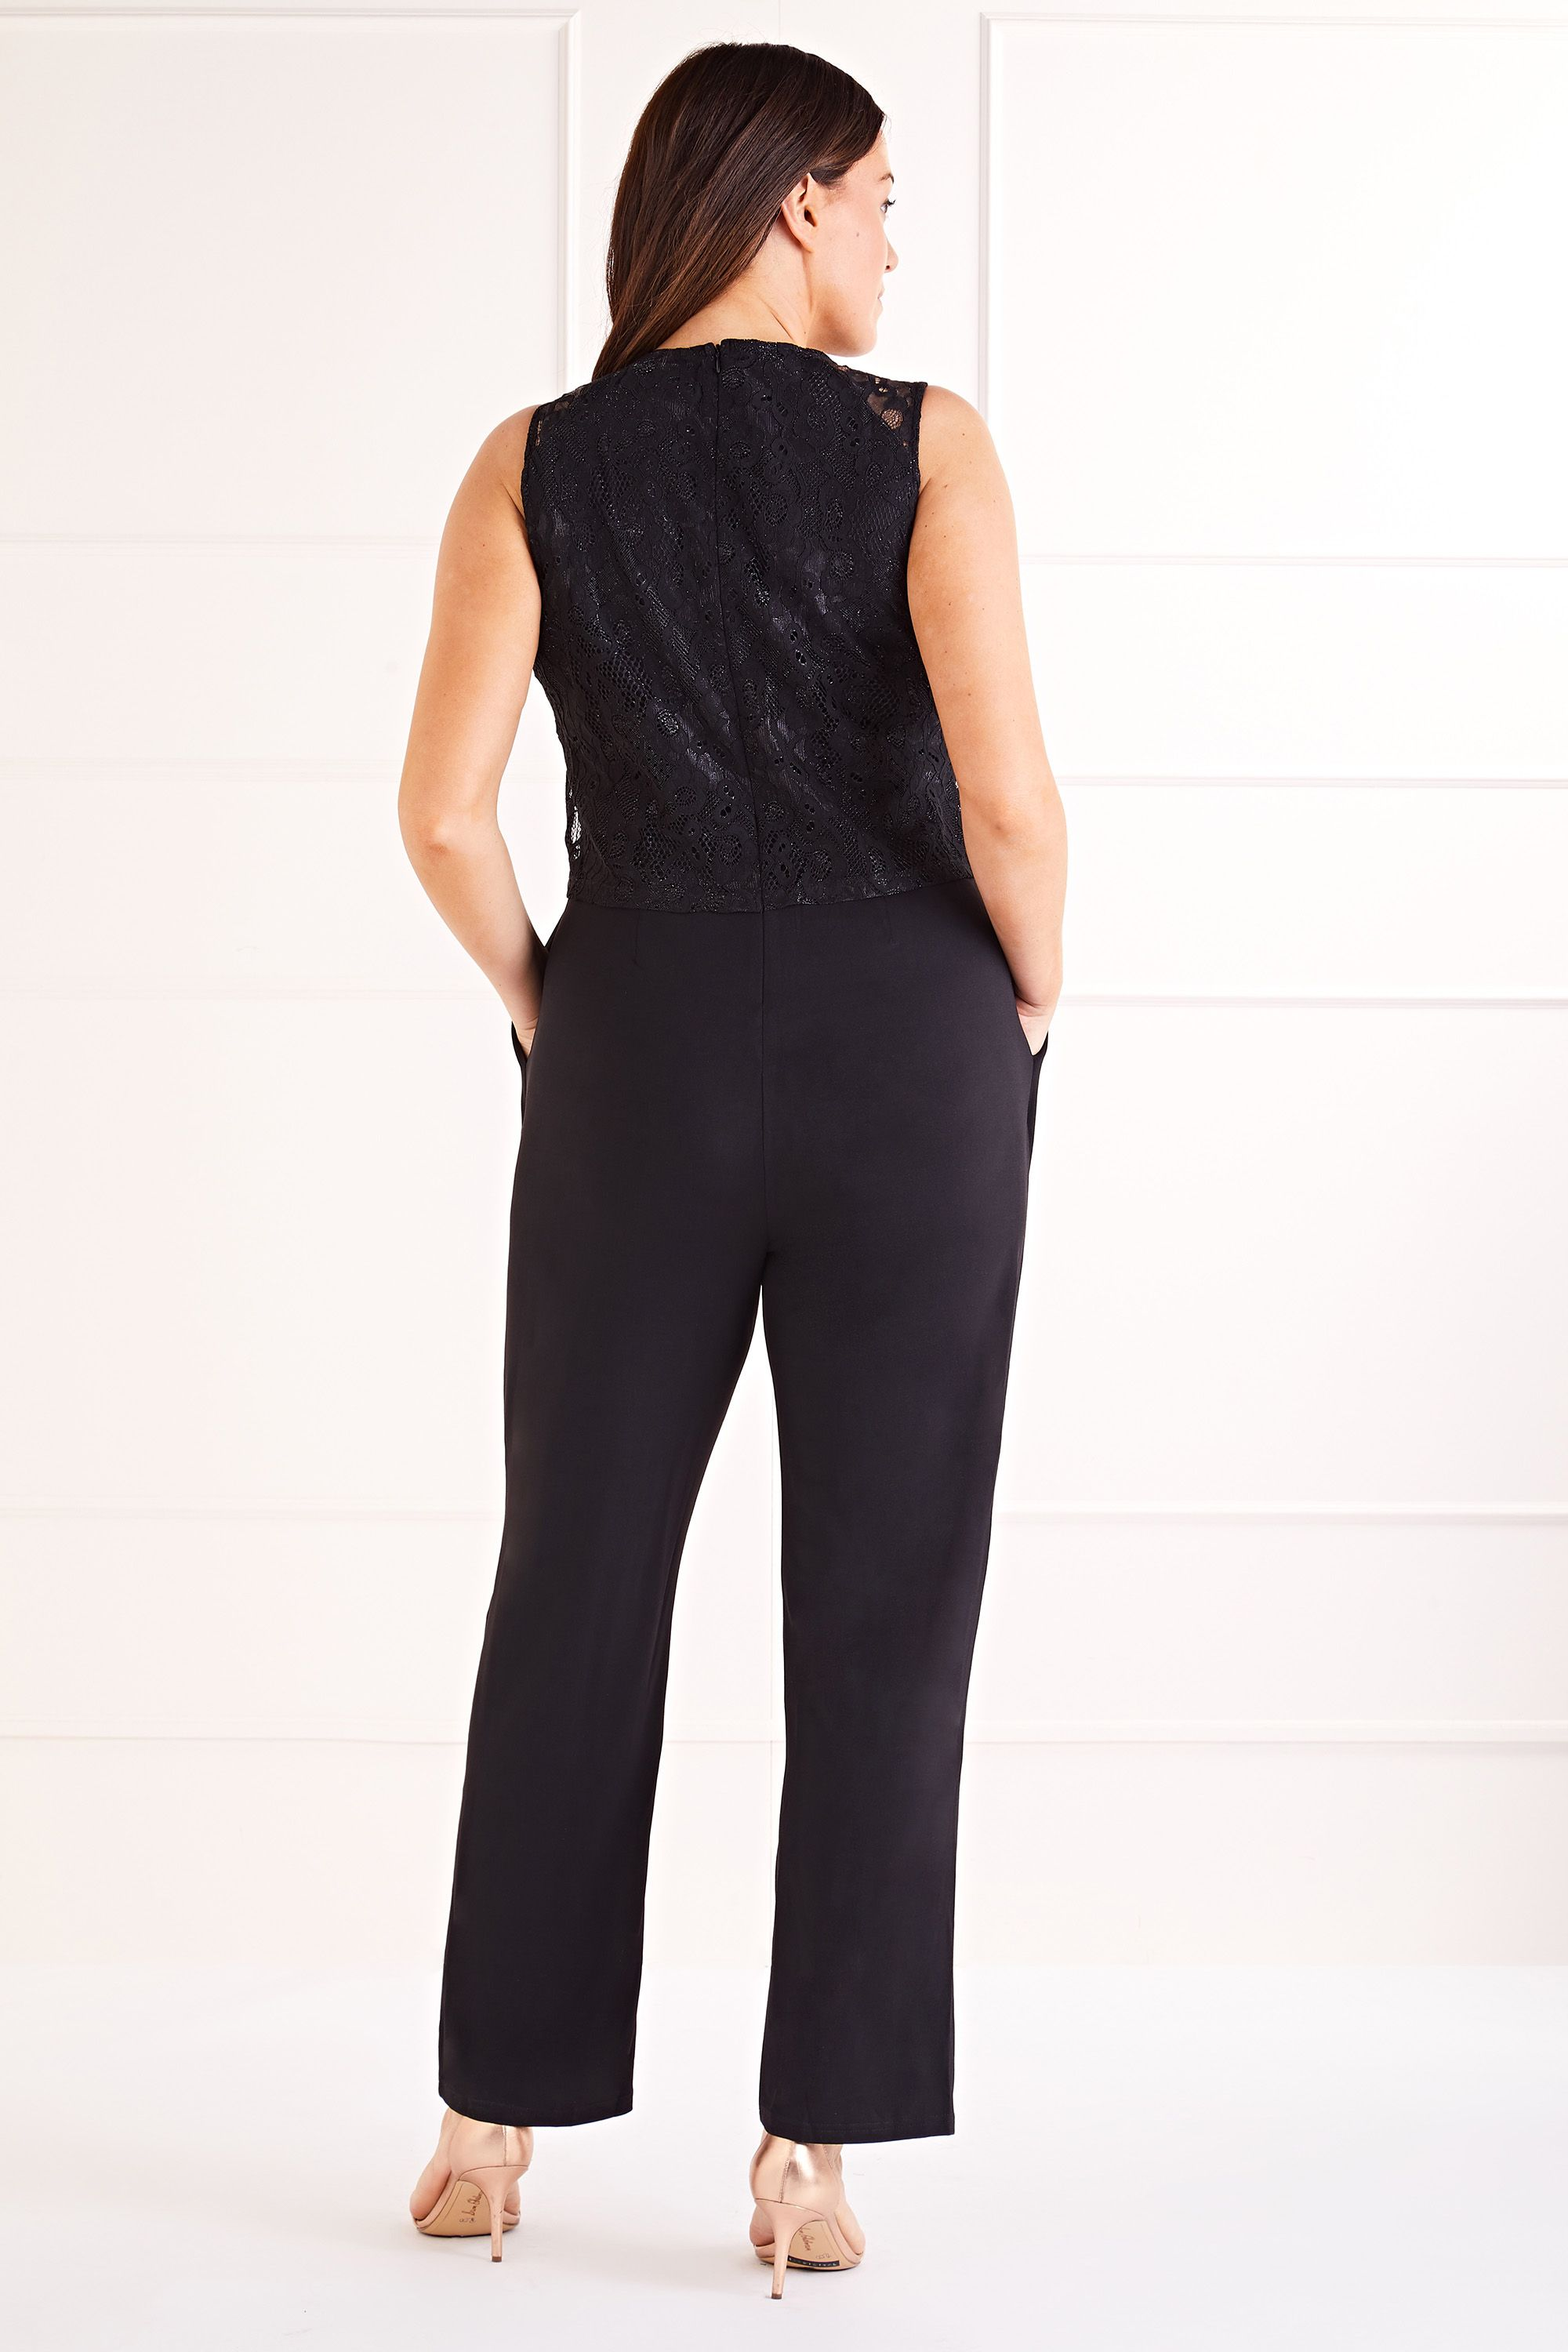 Lace Top Overlay Jumpsuit